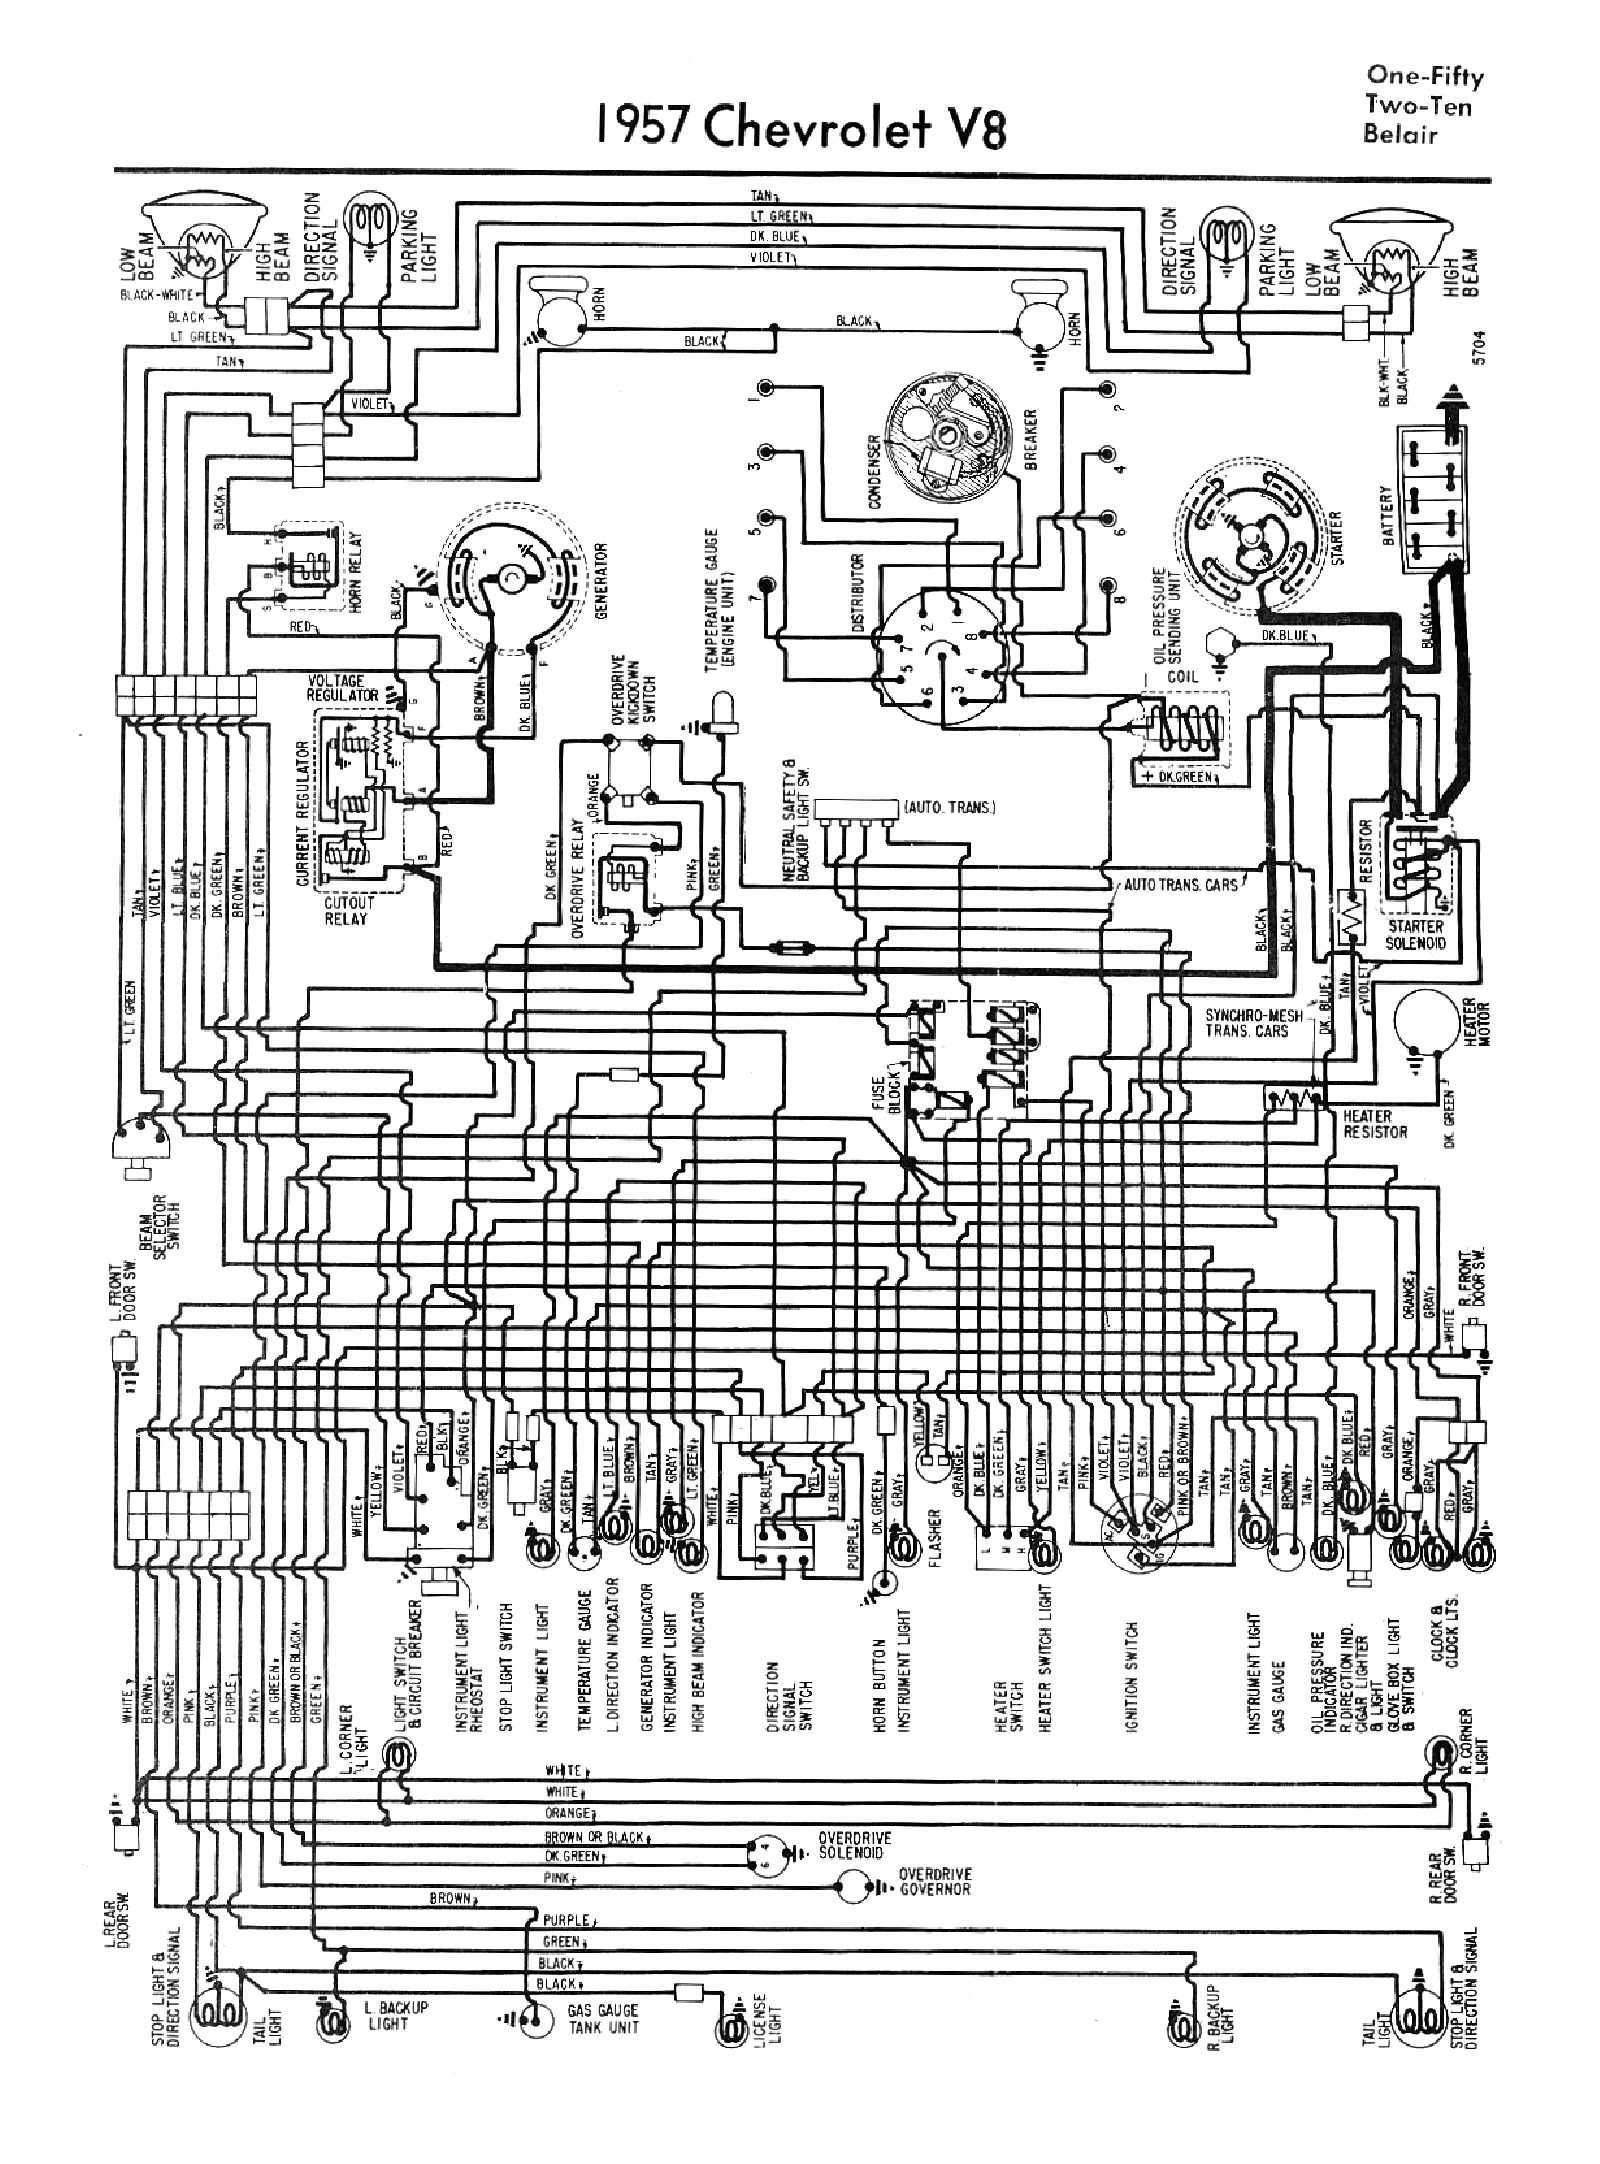 1977 Chevy Truck Wiring Diagram Another Blog About Light 78 Nova Wire Free Engine Image Steering Column